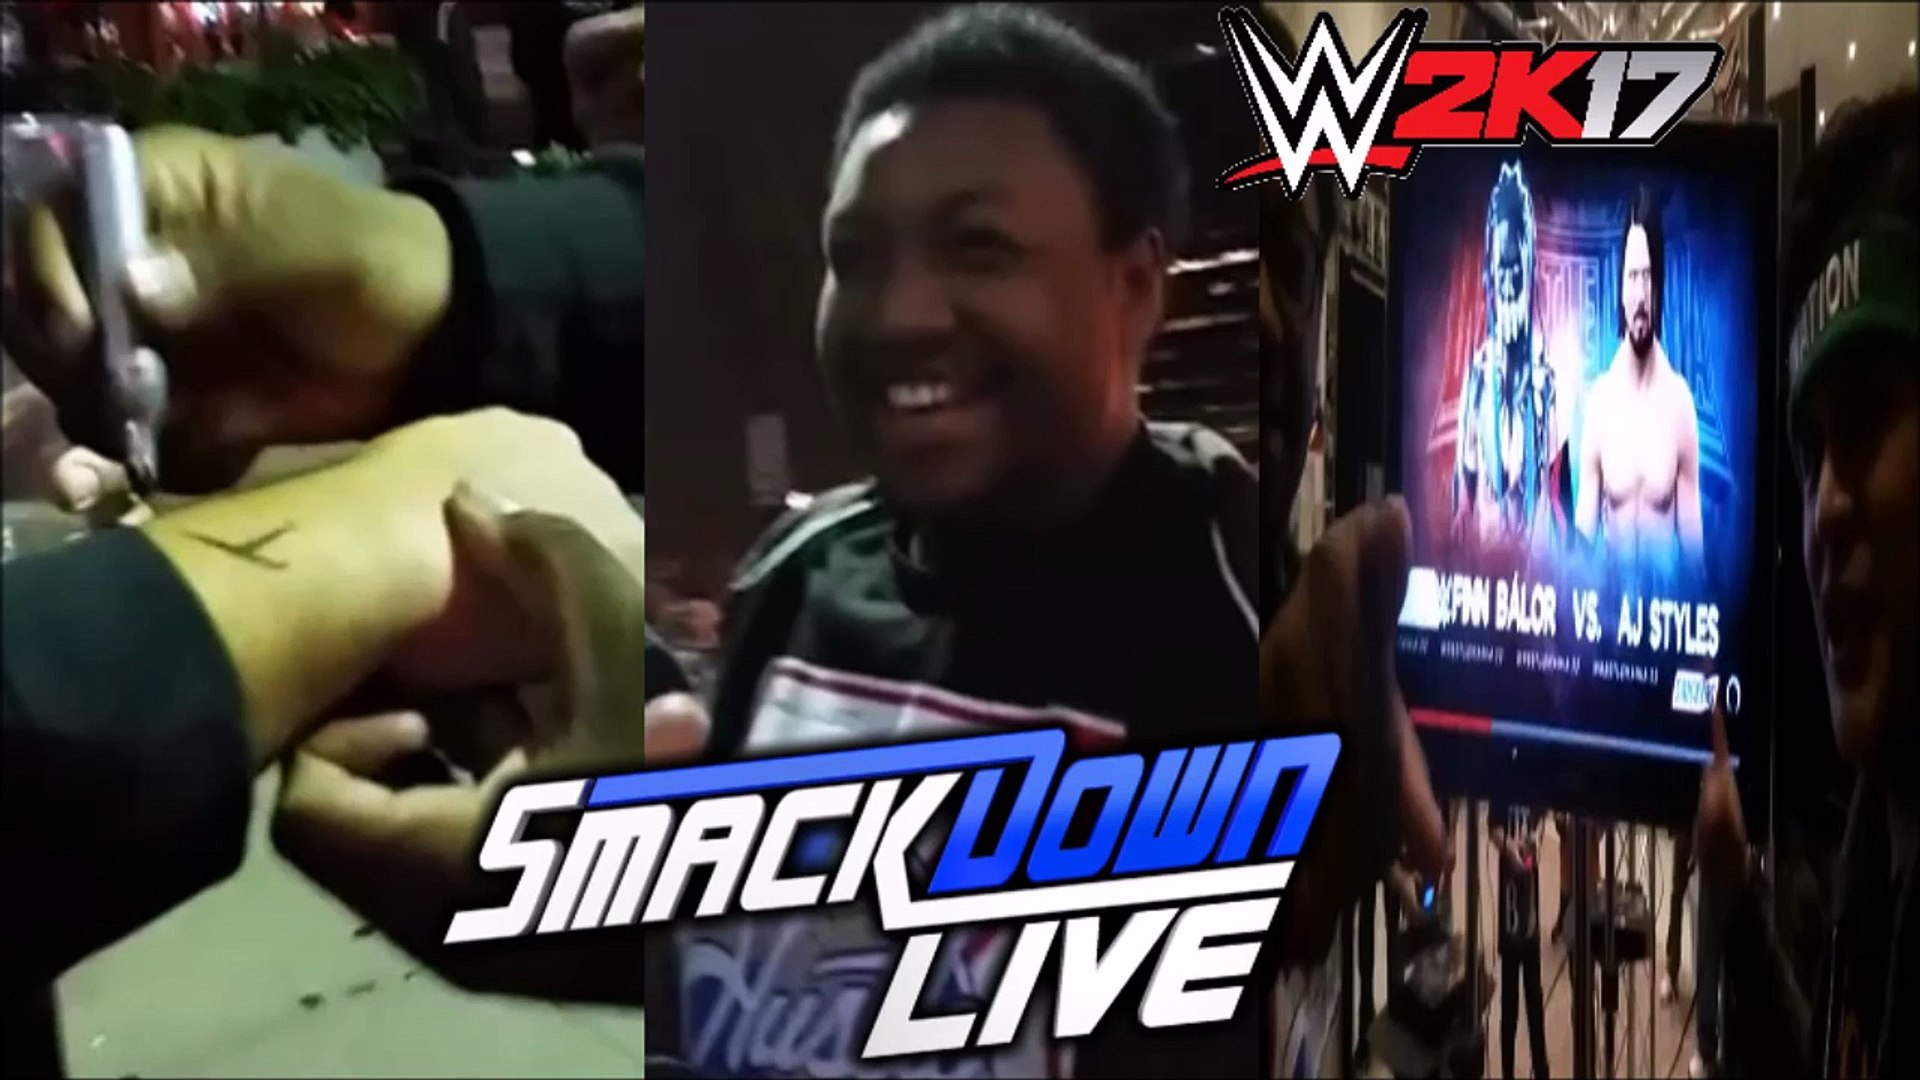 IDIOT WRESTLING FAN GIVES OUT AUTOGRAPHS | WWE 2K17 | WWE SMACKDOWN LIVE REACTIONS VLOG PART 1